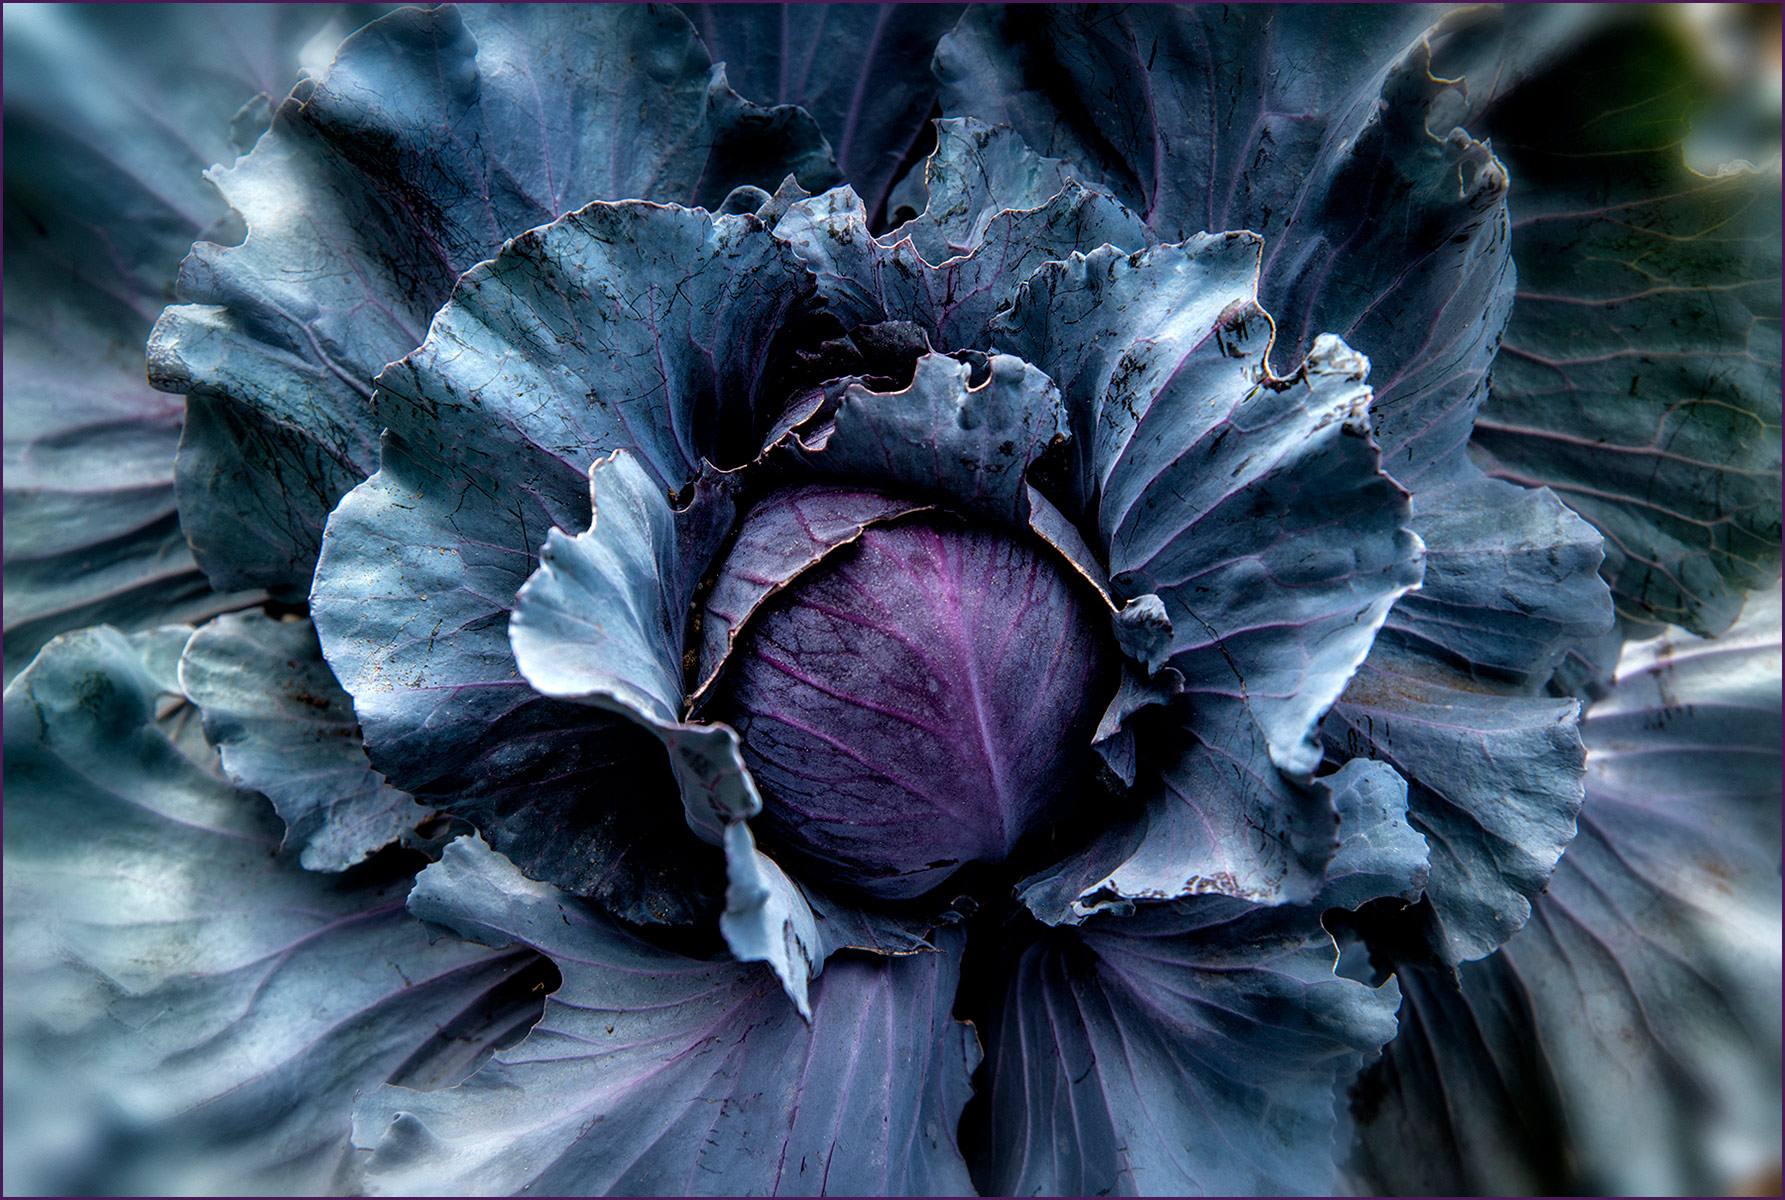 Cabbage-Carl-Kravats-Food-Photography